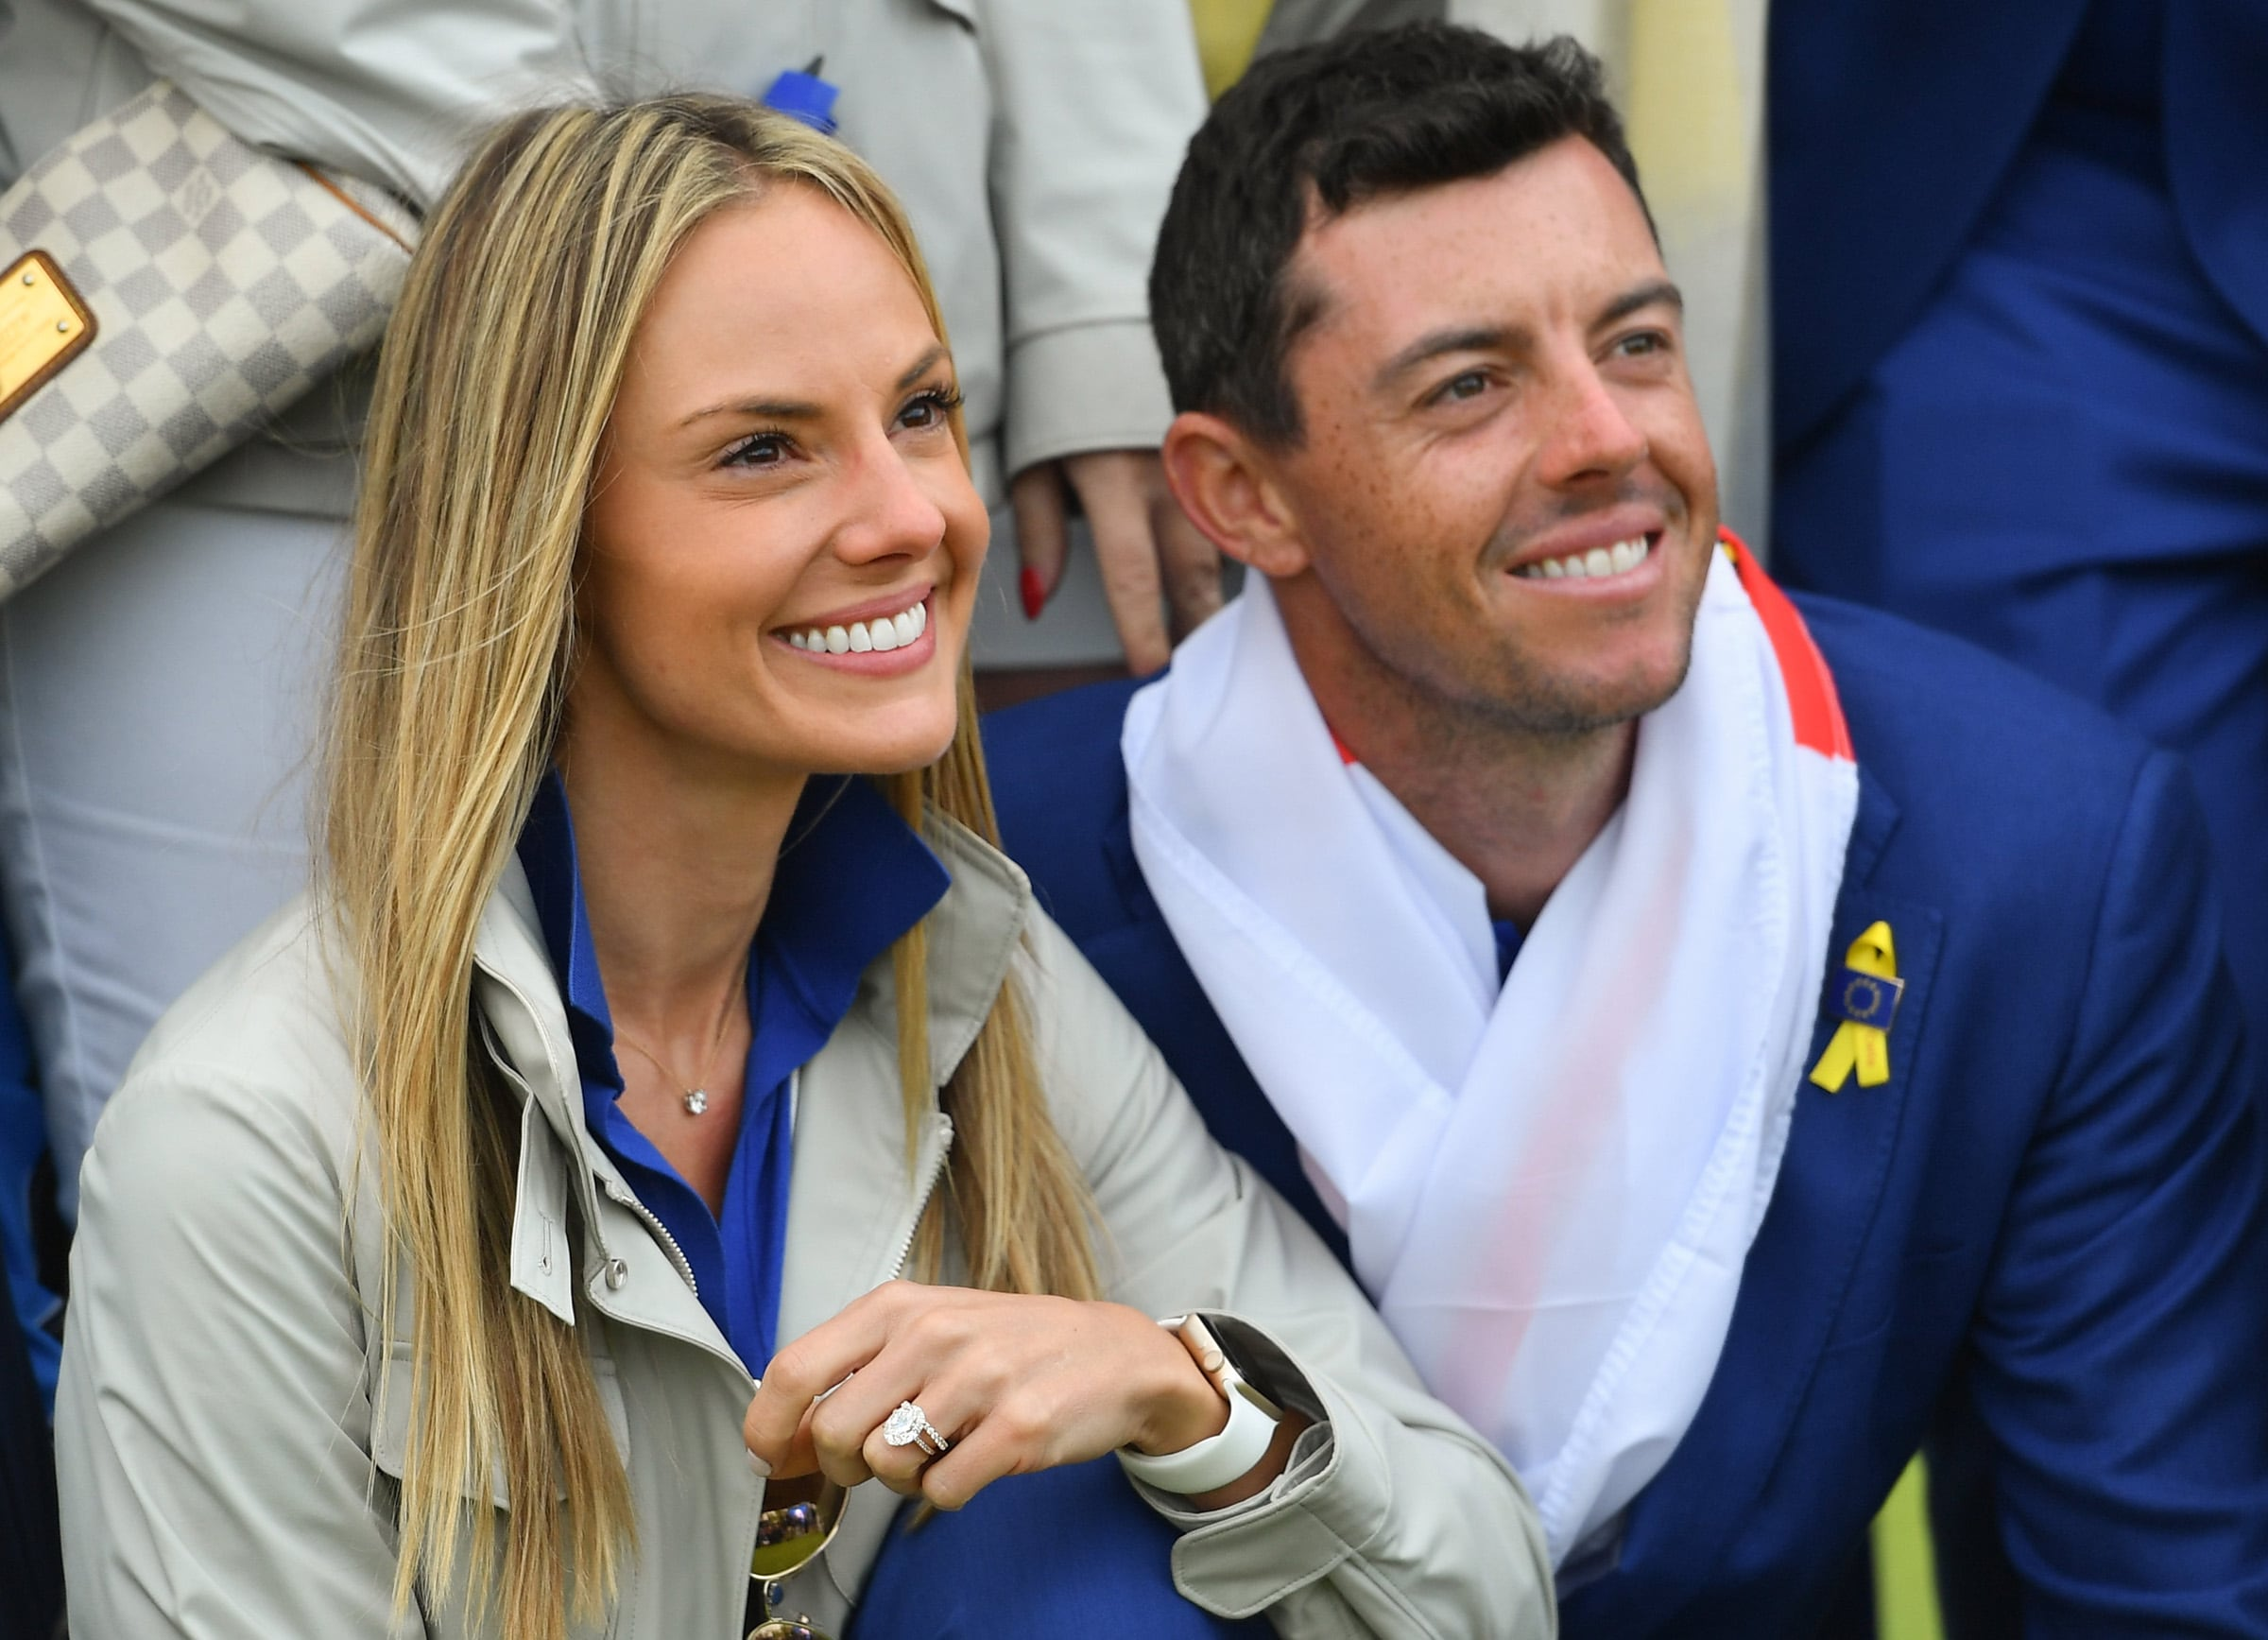 Erica and Rory McIlroy